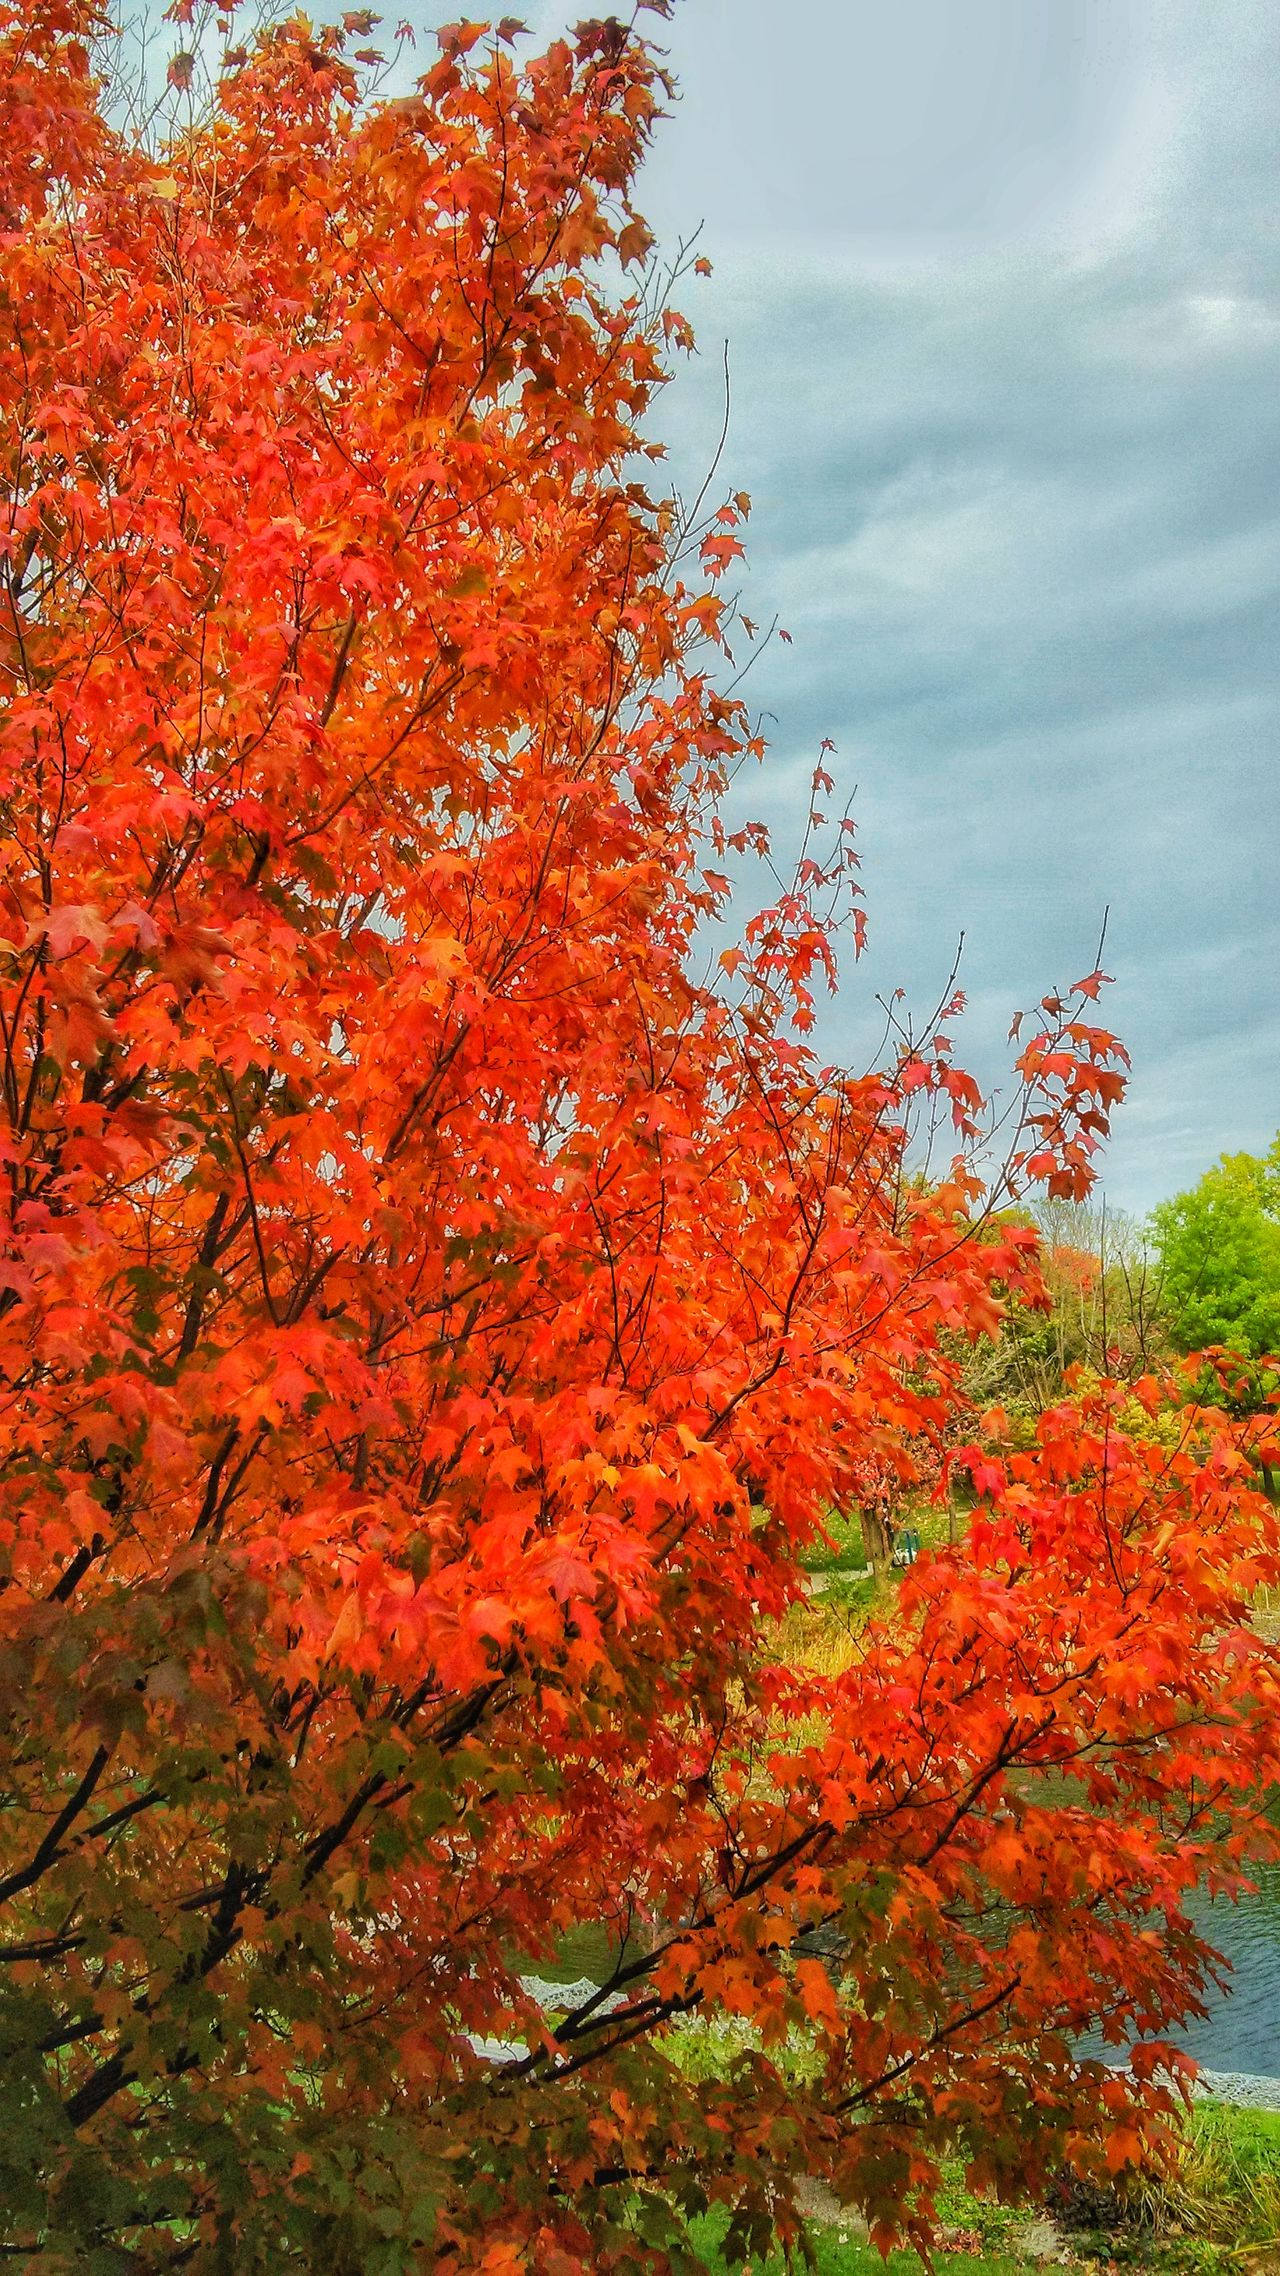 Nature Tree Orange Color Growth Sky Beauty In Nature Red Change No People Outdoors Day Cloud - Sky Close-up Freshness Water Single Tree